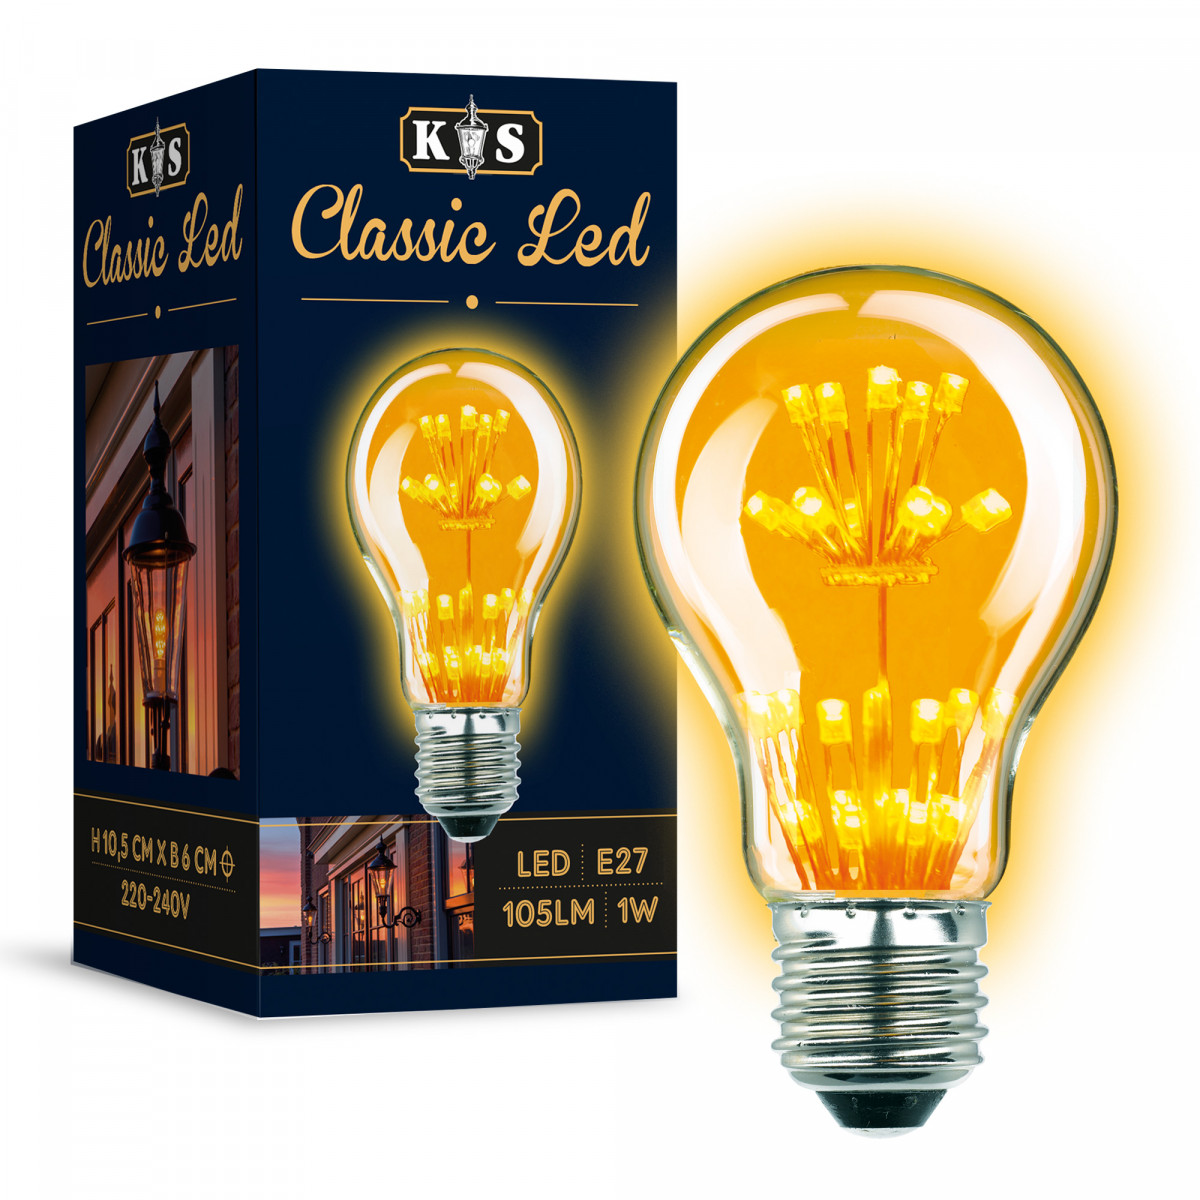 Ledlamp 5883 classic led lamp lichtbron